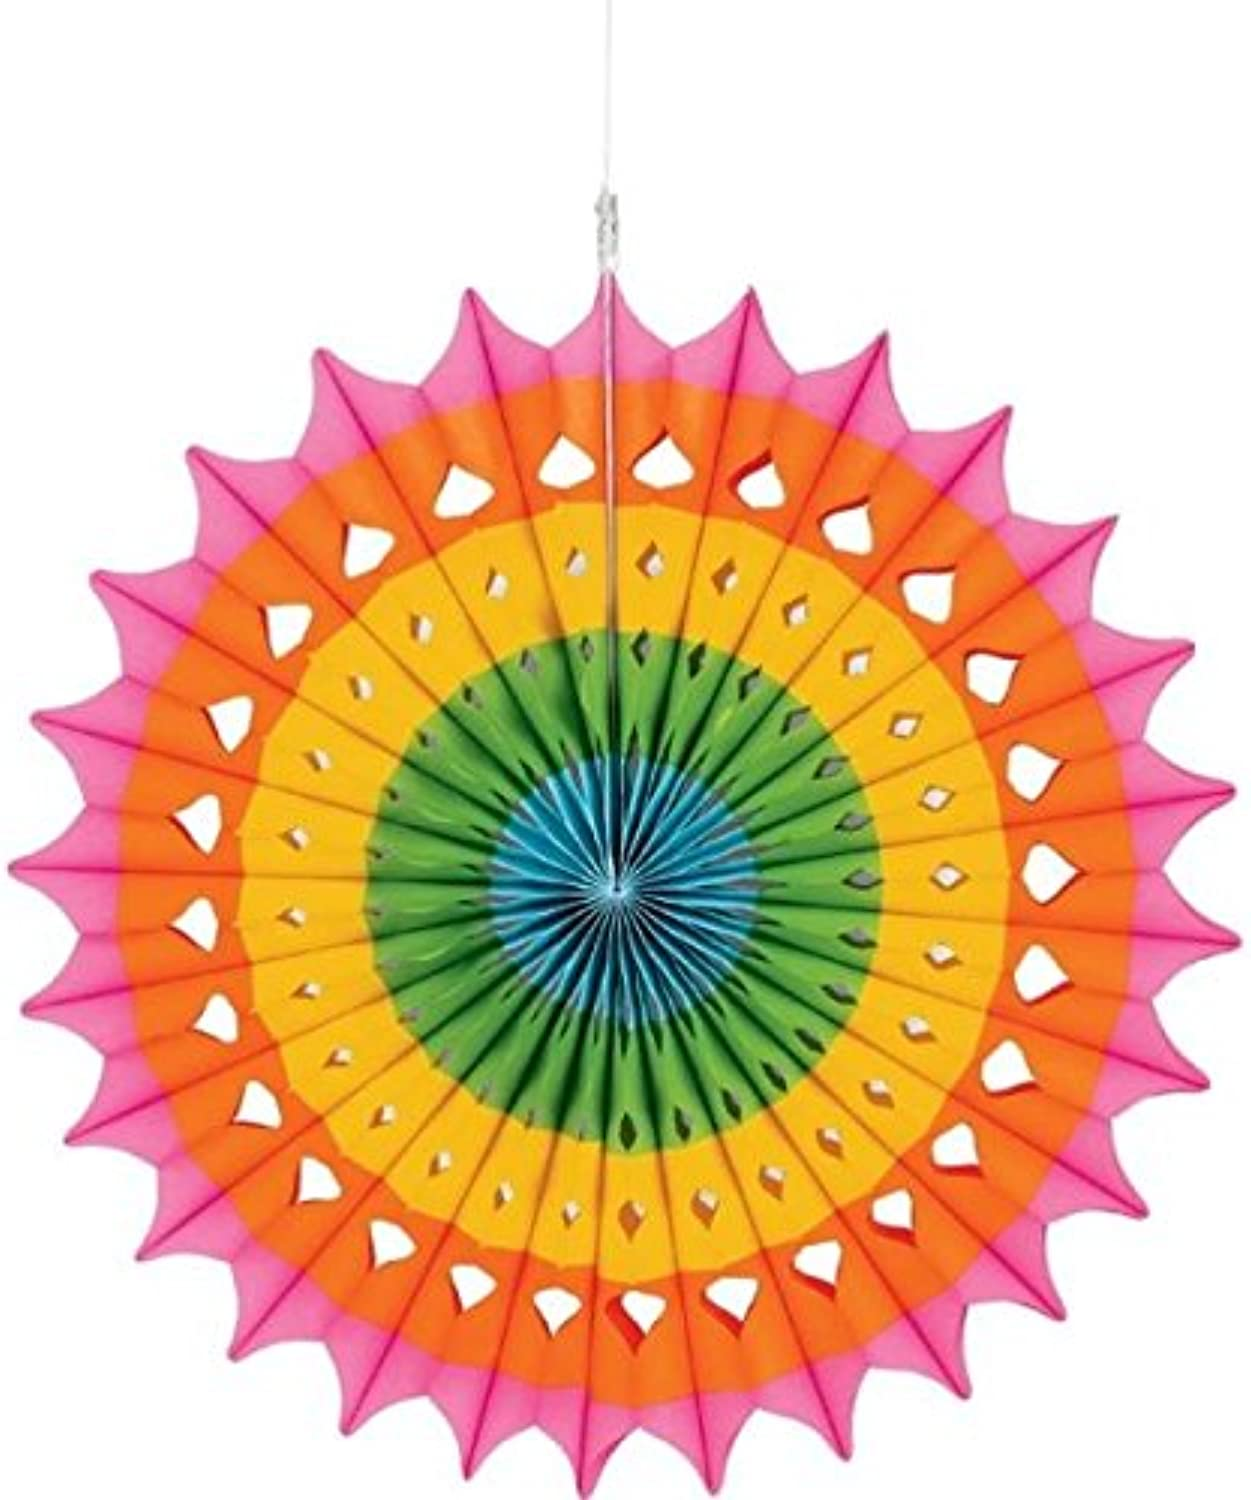 Amscan 290460.90 Hanging Fan Decoration, Party Supplies, Multi, 16 inches